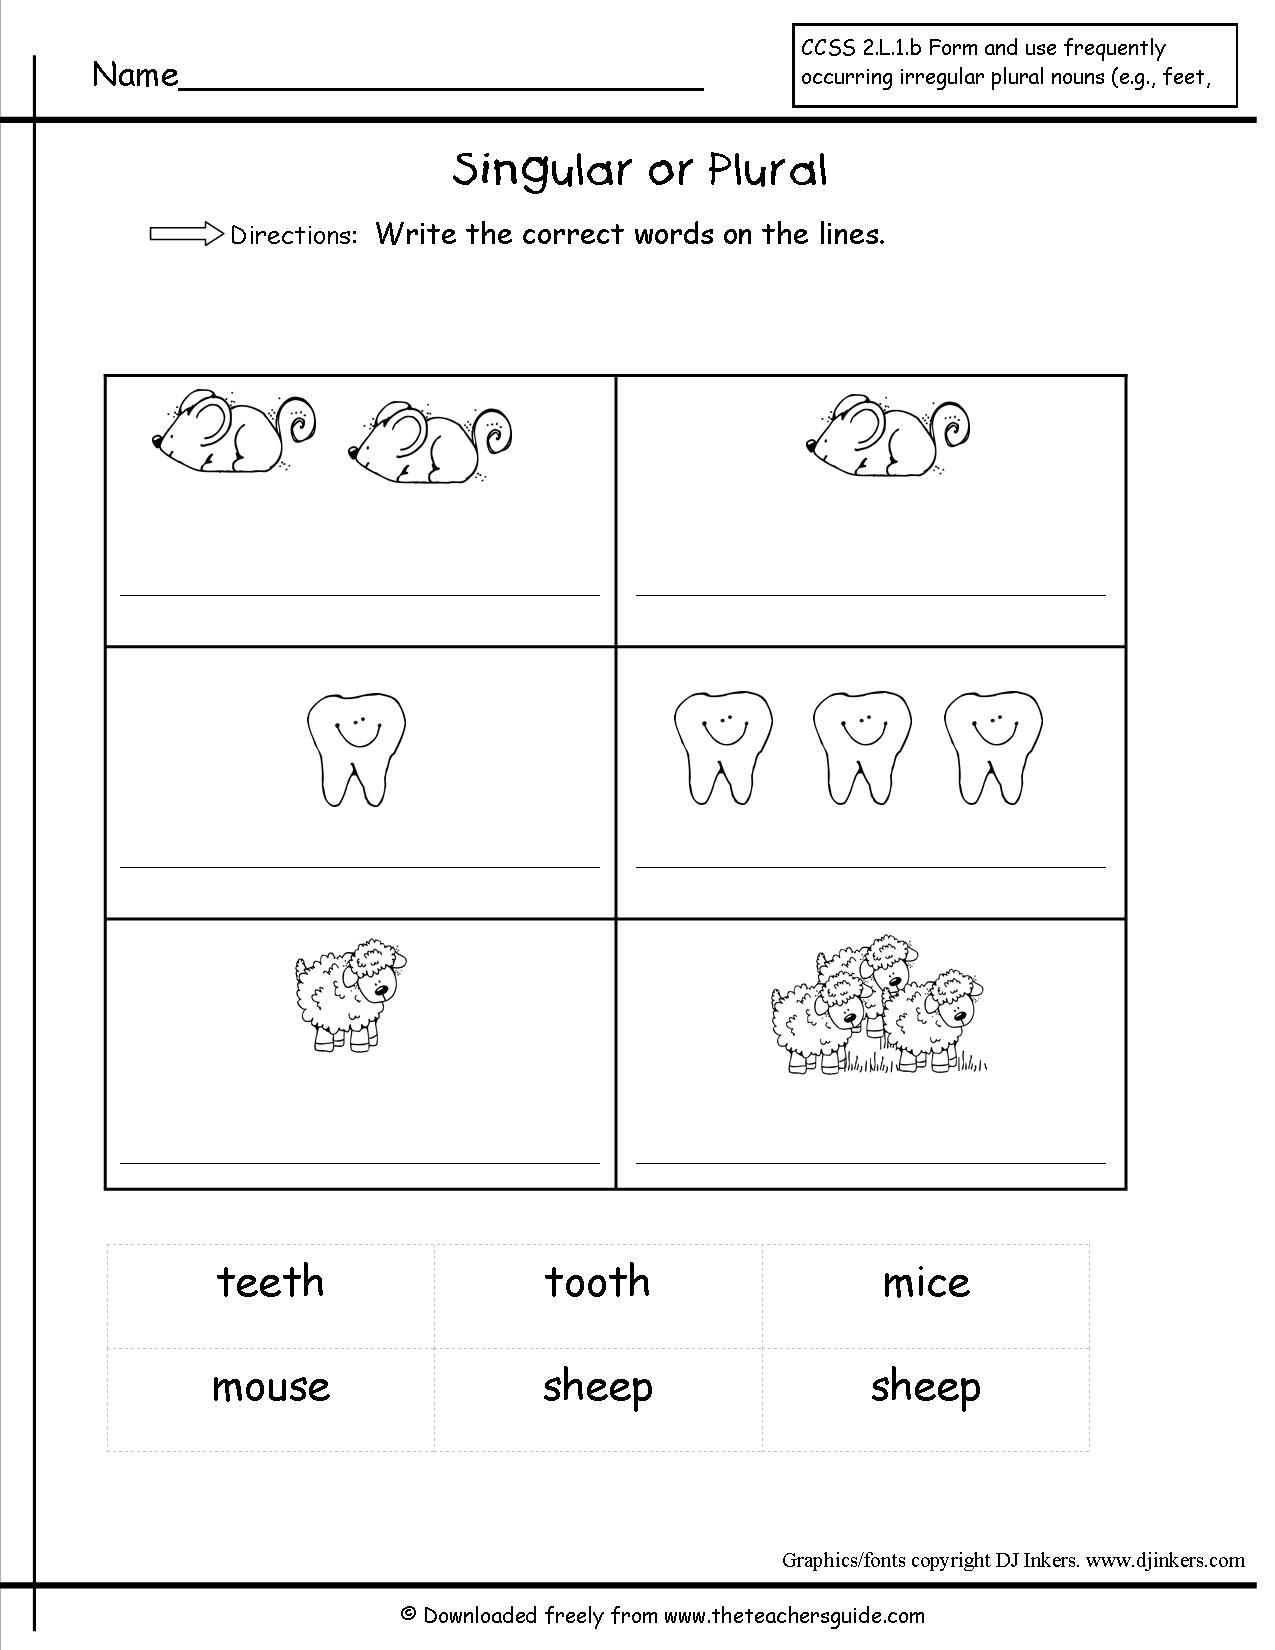 Singular and Plural Nouns Worksheets from The Teacher's Guide   Plurals  worksheets [ 1650 x 1275 Pixel ]